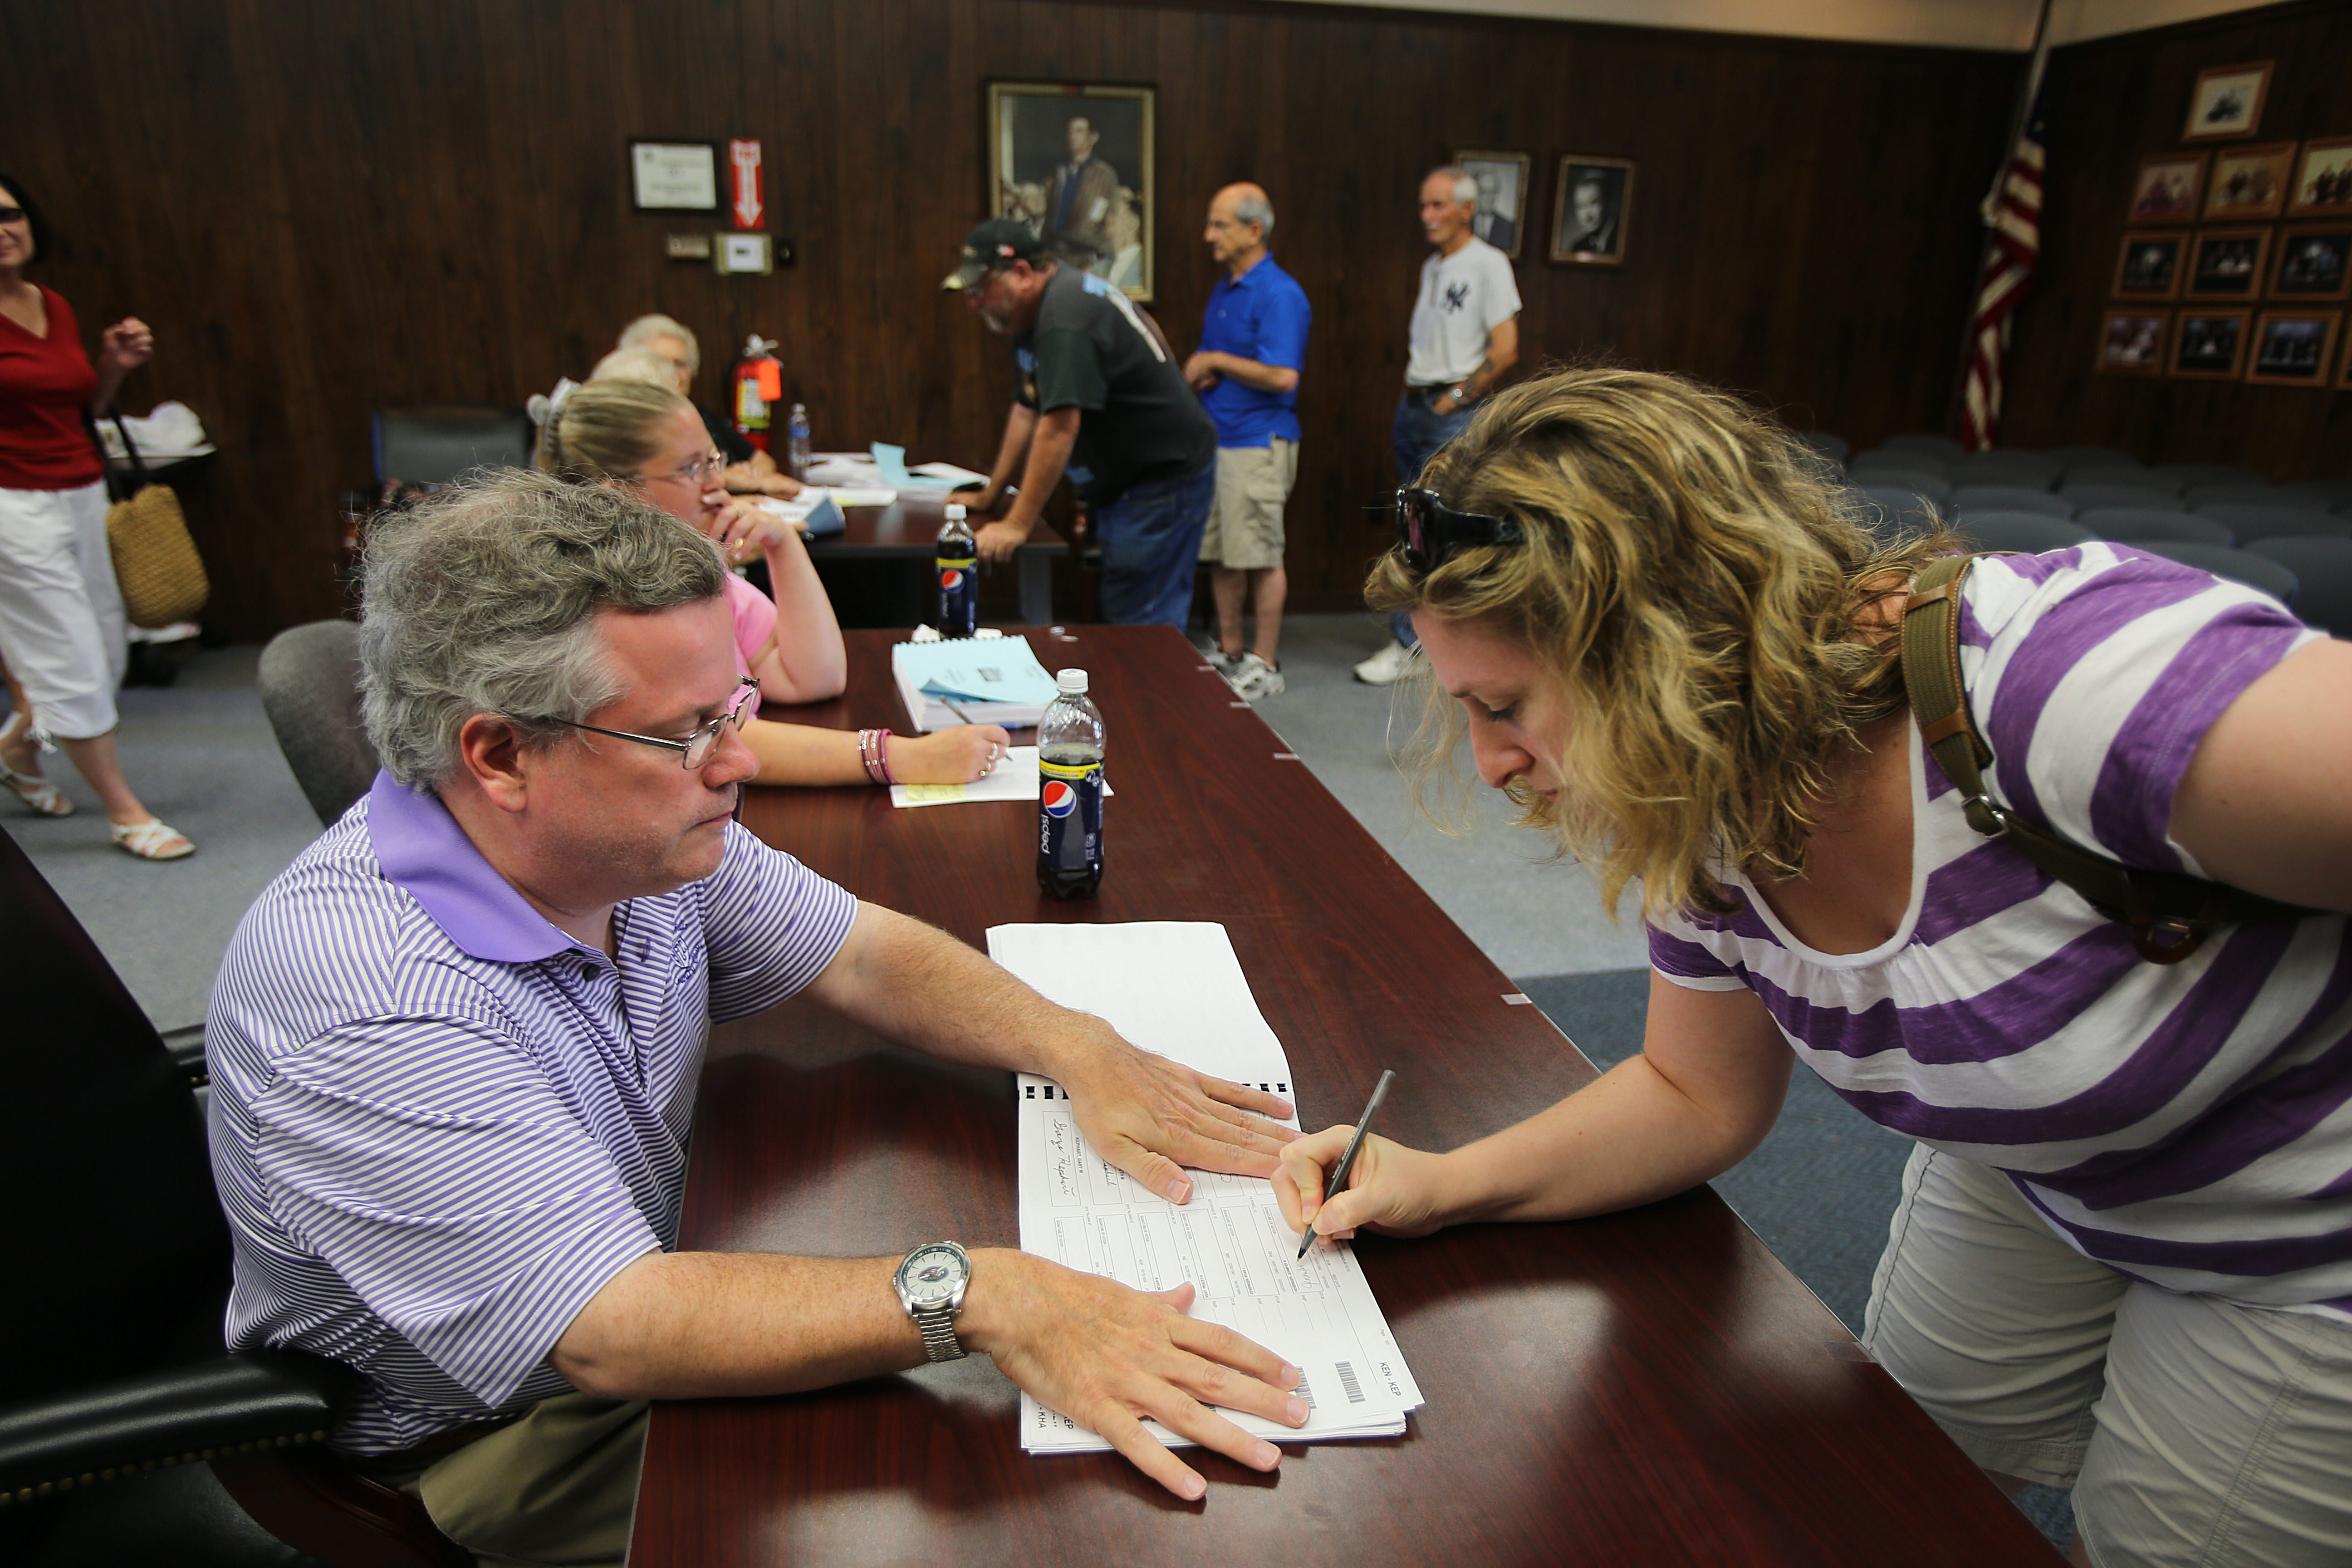 Jennifer Kensinger, of the Town of Lewiston, right, is signed in to vote by election inspector Daniel Vitch in Lewiston Town Hall.